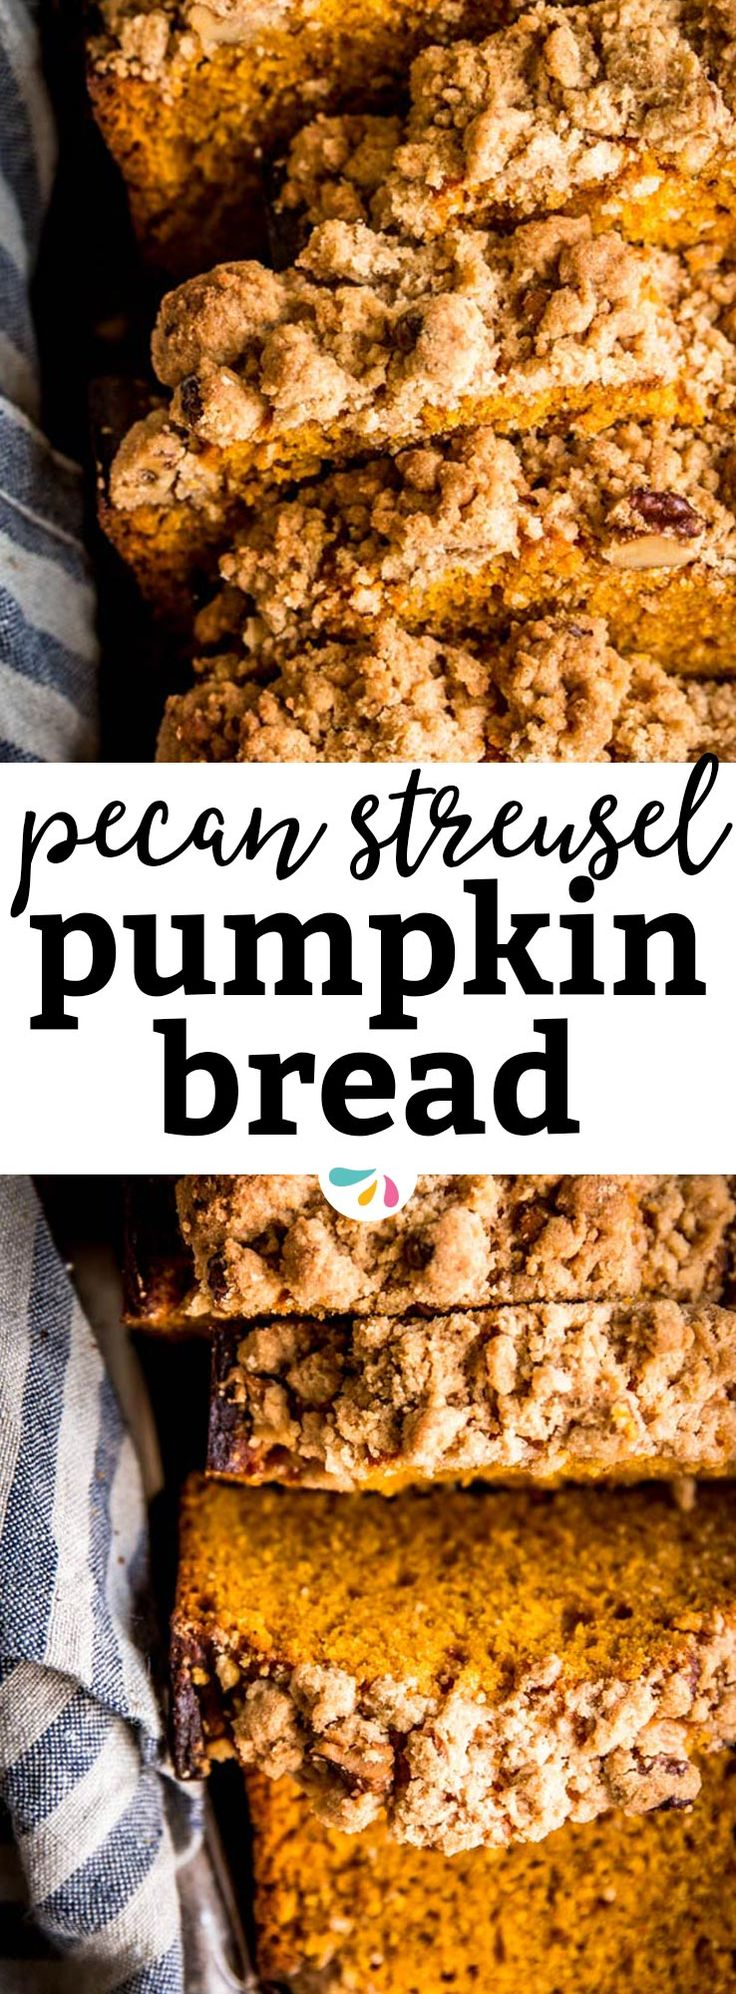 This is an easy recipe for a moist and fluffy pumpkin bread that will have everyone begging for more! It's made with the BEST cinnamon pecan streusel topping for extra crunch & flavor. A simple treat, totally from scratch, that will make you feel like Pioneer Woman herself ;) Don't skip the classic fall quick bread this year - for Halloween, Thanksgiving or just because! Makes two loaves, so you'll have one as a cozy homemade gift idea. | #fall #halloween #pumpkin #recipe #baking…